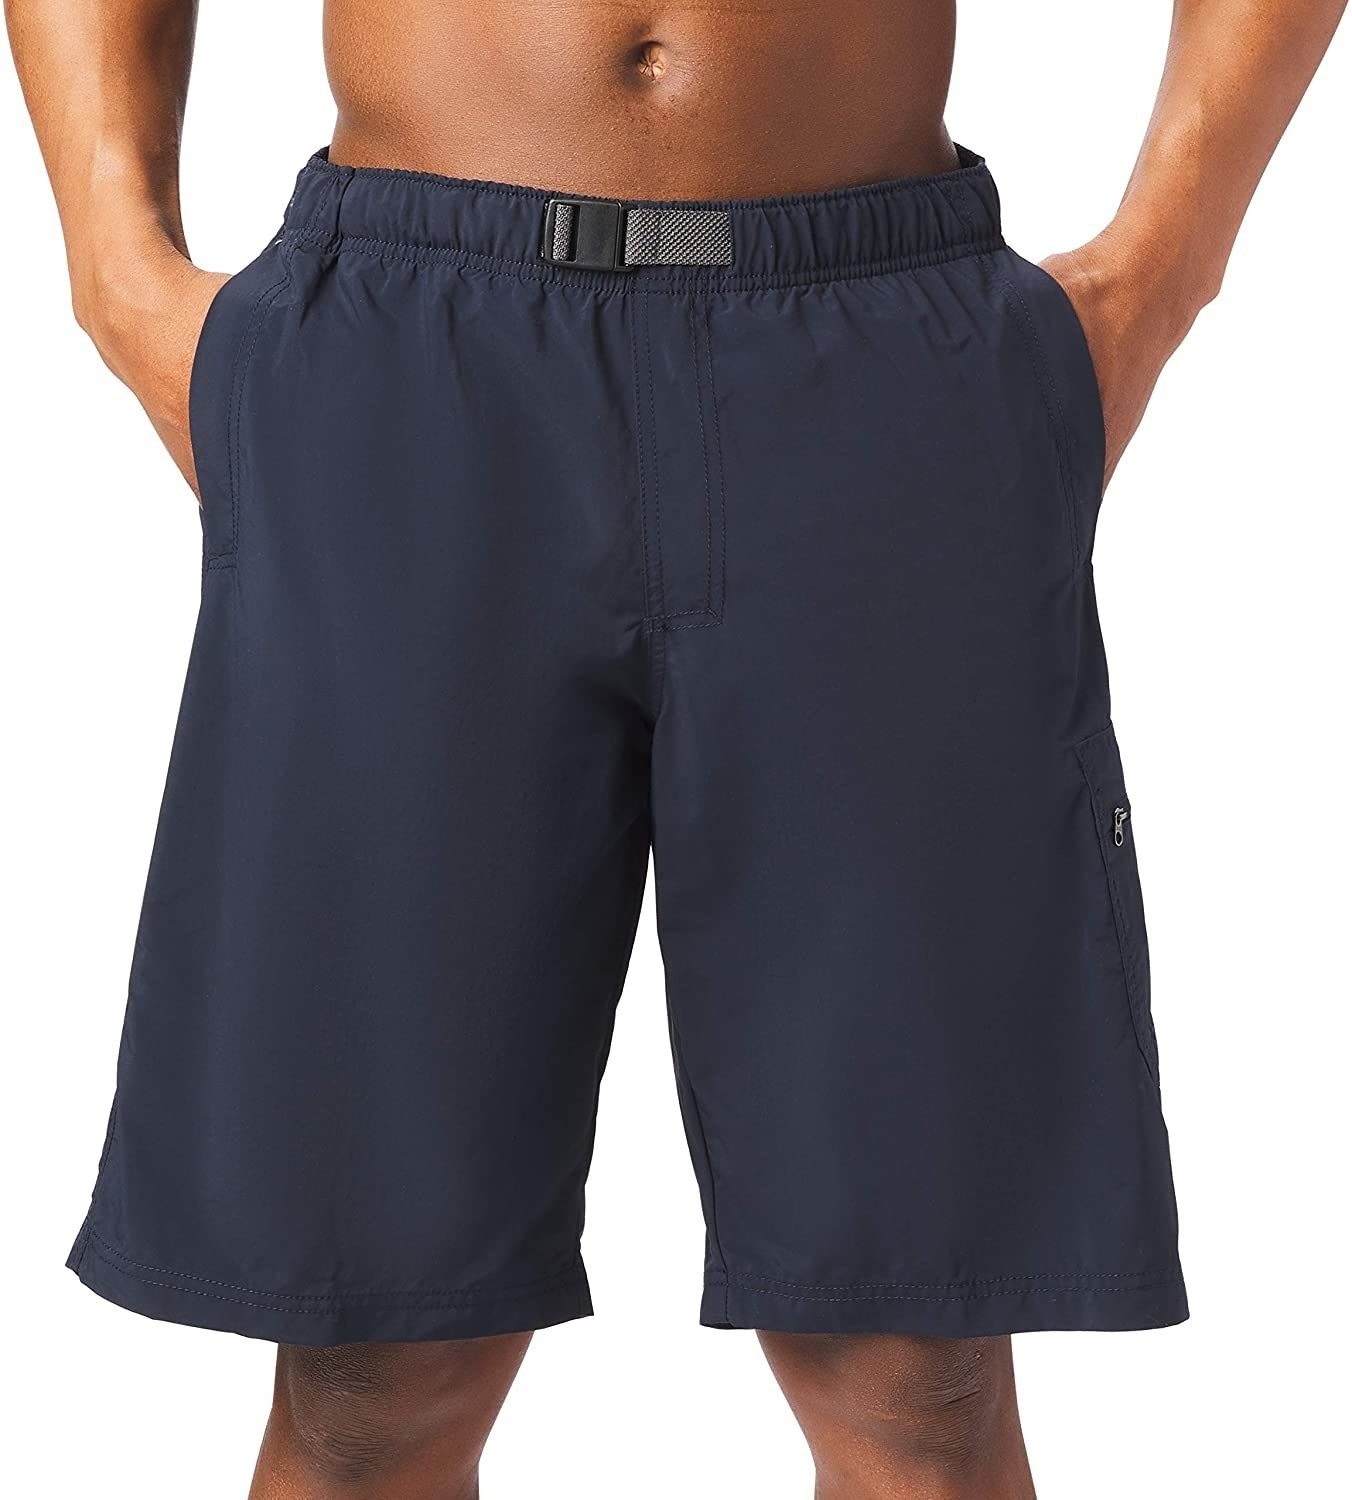 model in navy knee-length shorts with an elastic, adjustable waist